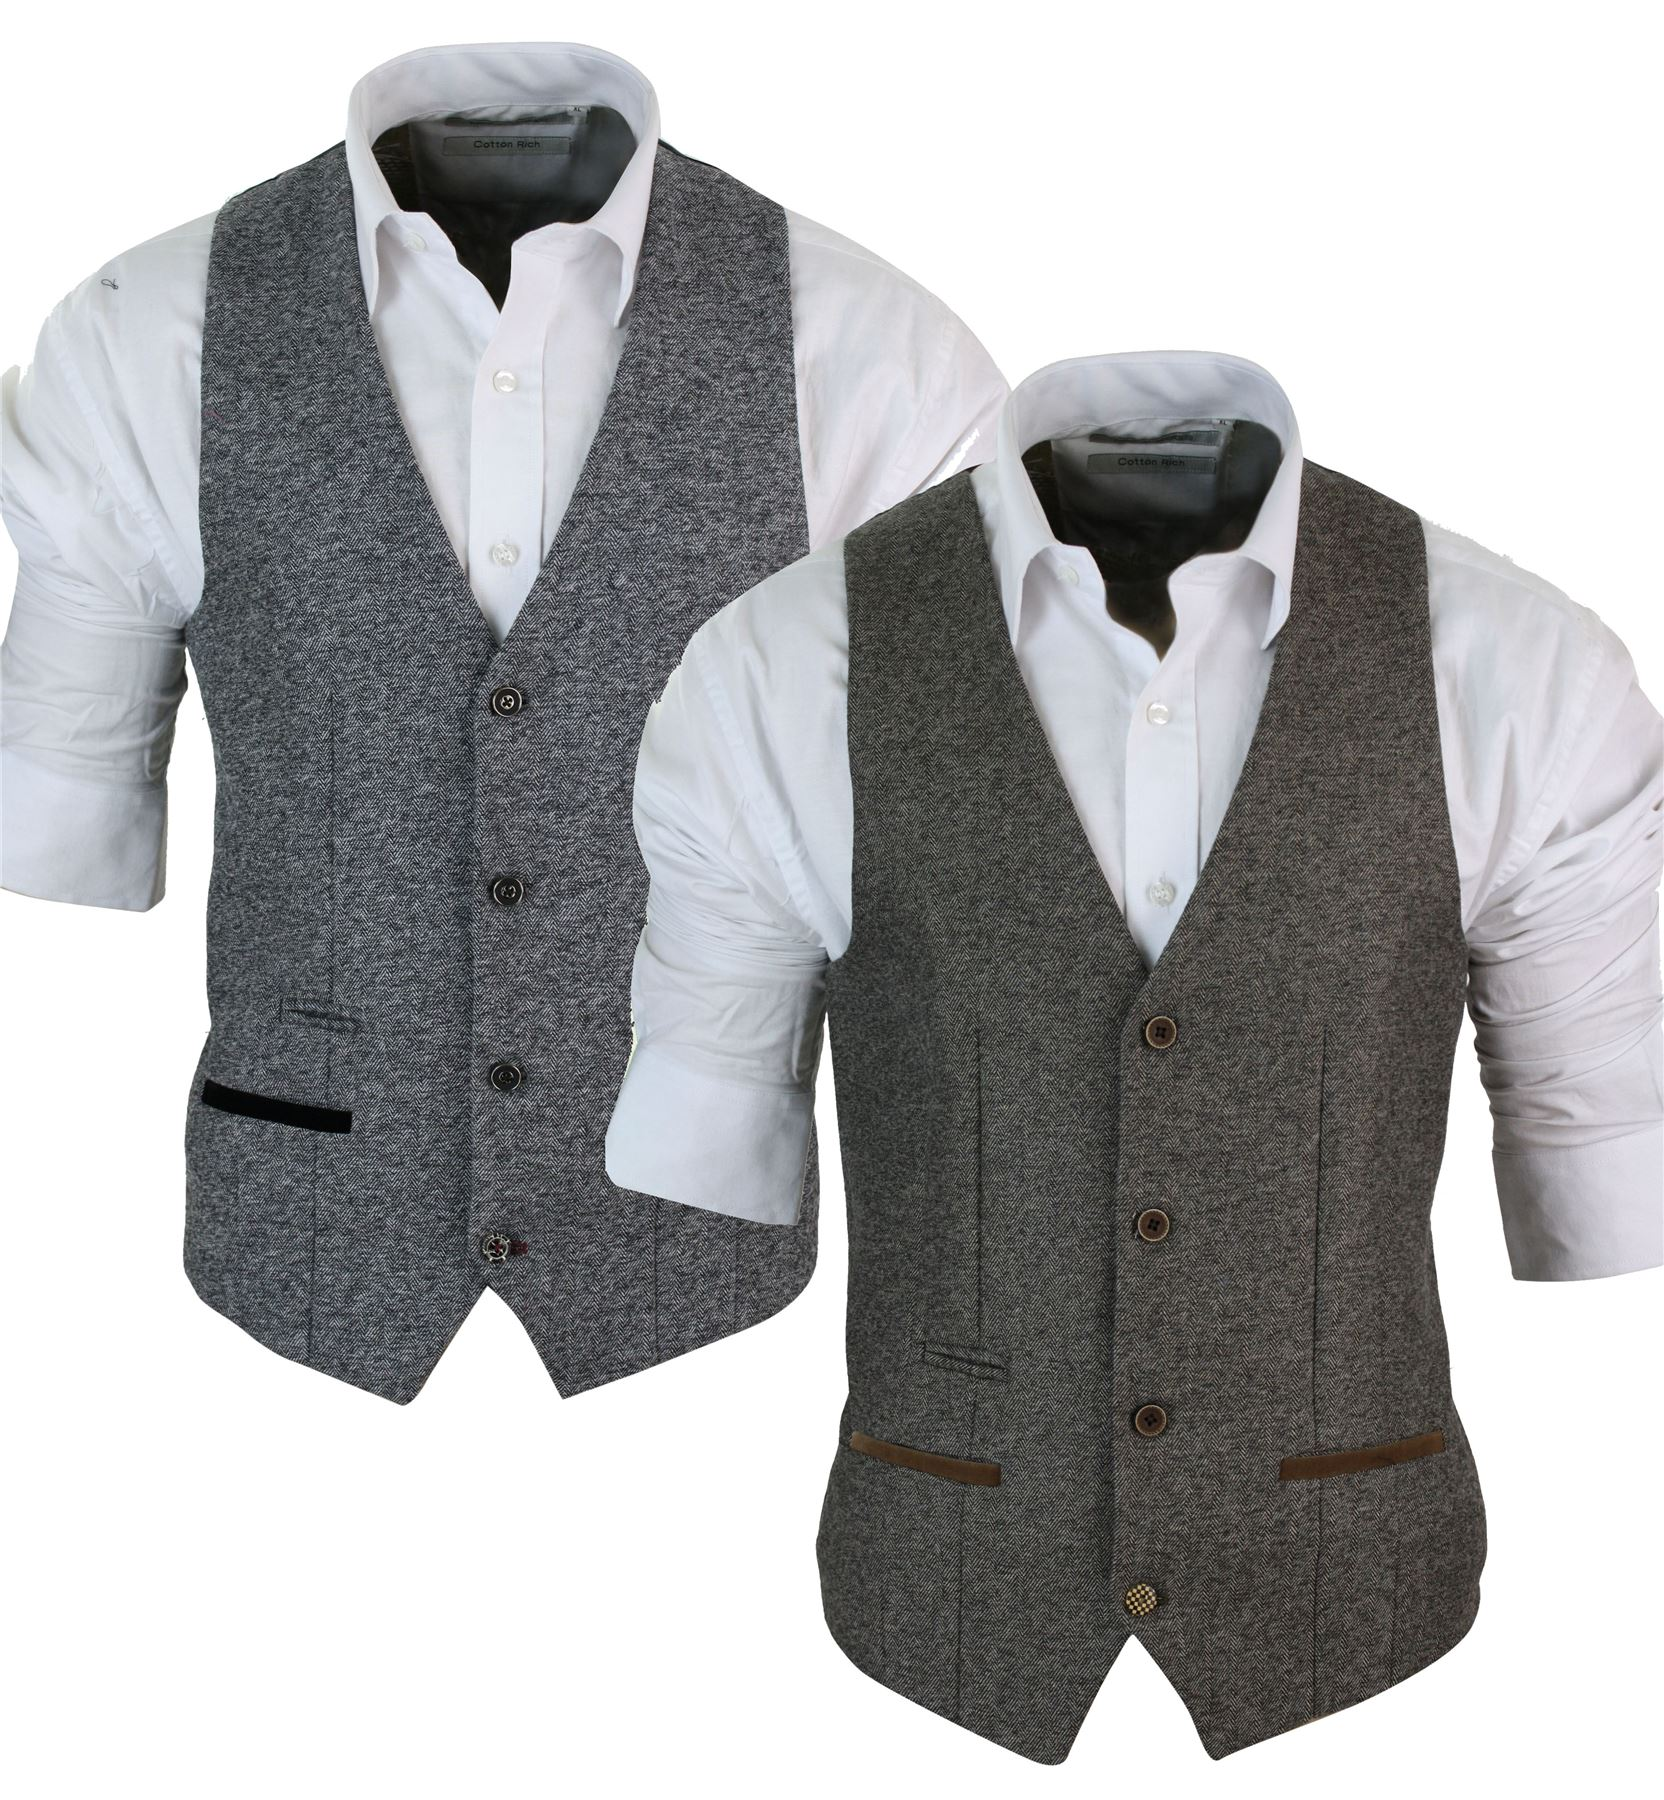 Shop for cheap casual waistcoat, slim fit mens vest online, including wool waist coat, black waistcoat for men at best price from grounwhijwgg.cf